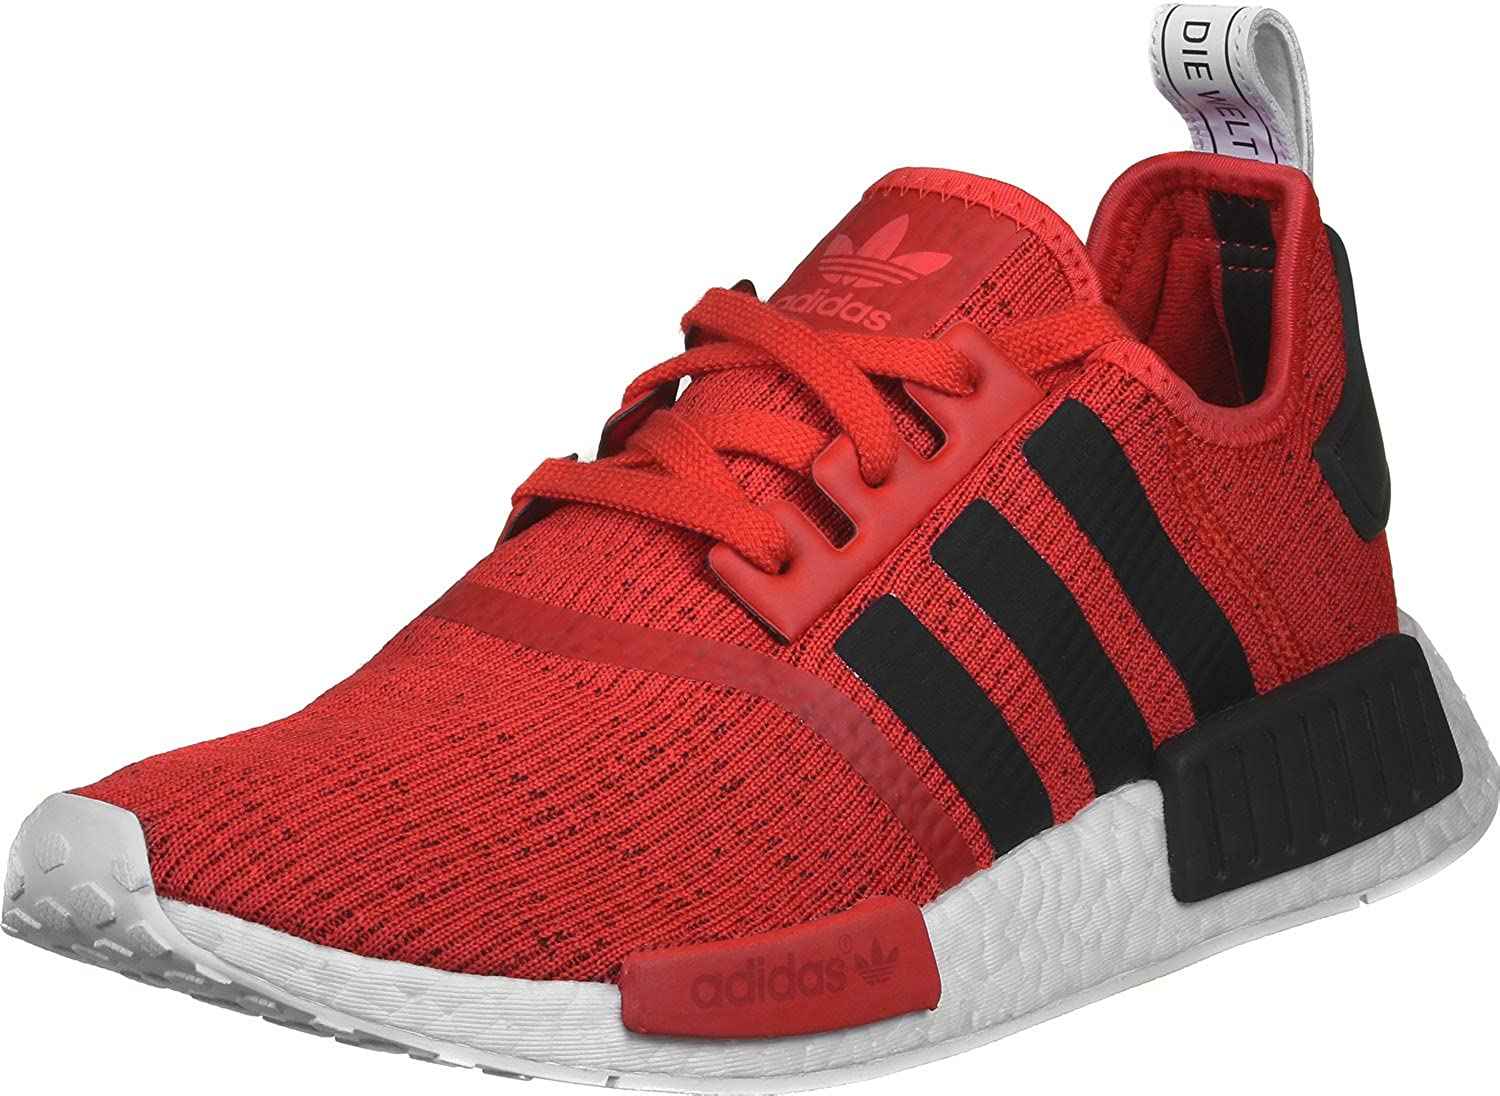 nmd r1 rouge Off 59% - www.bashhguidelines.org